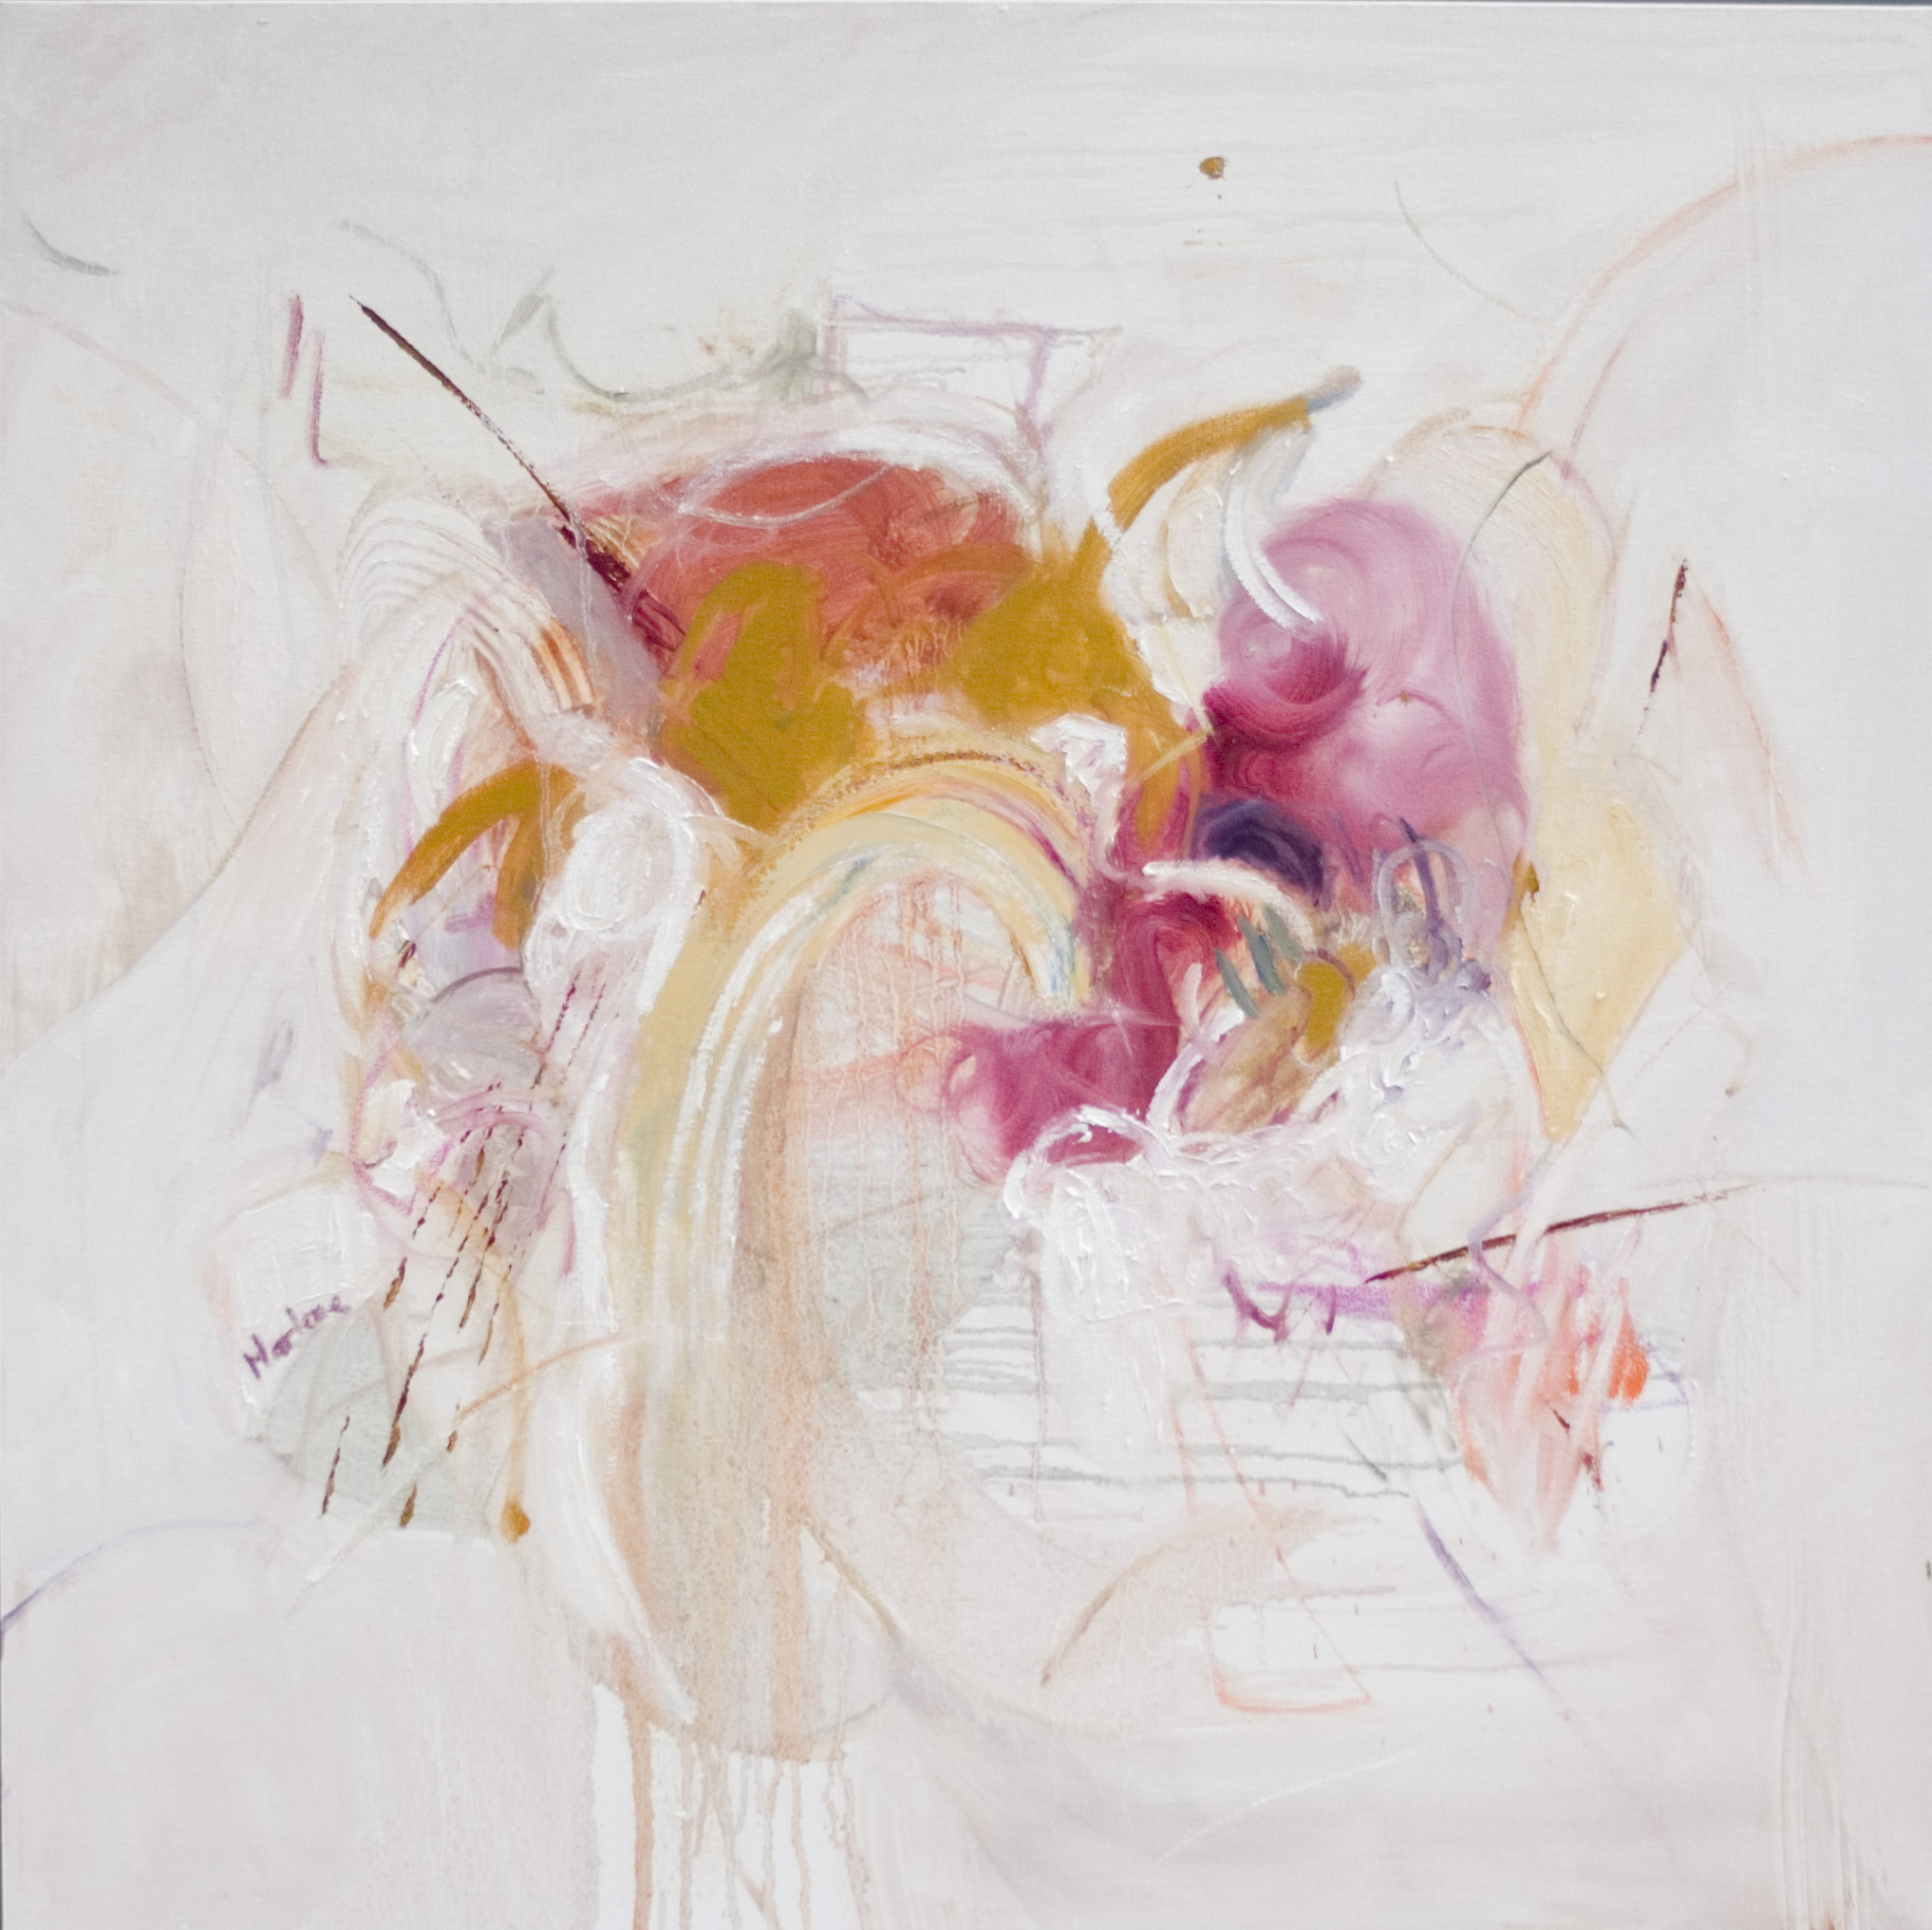 Unity in Diversity series of paintings by Marlene Lowden